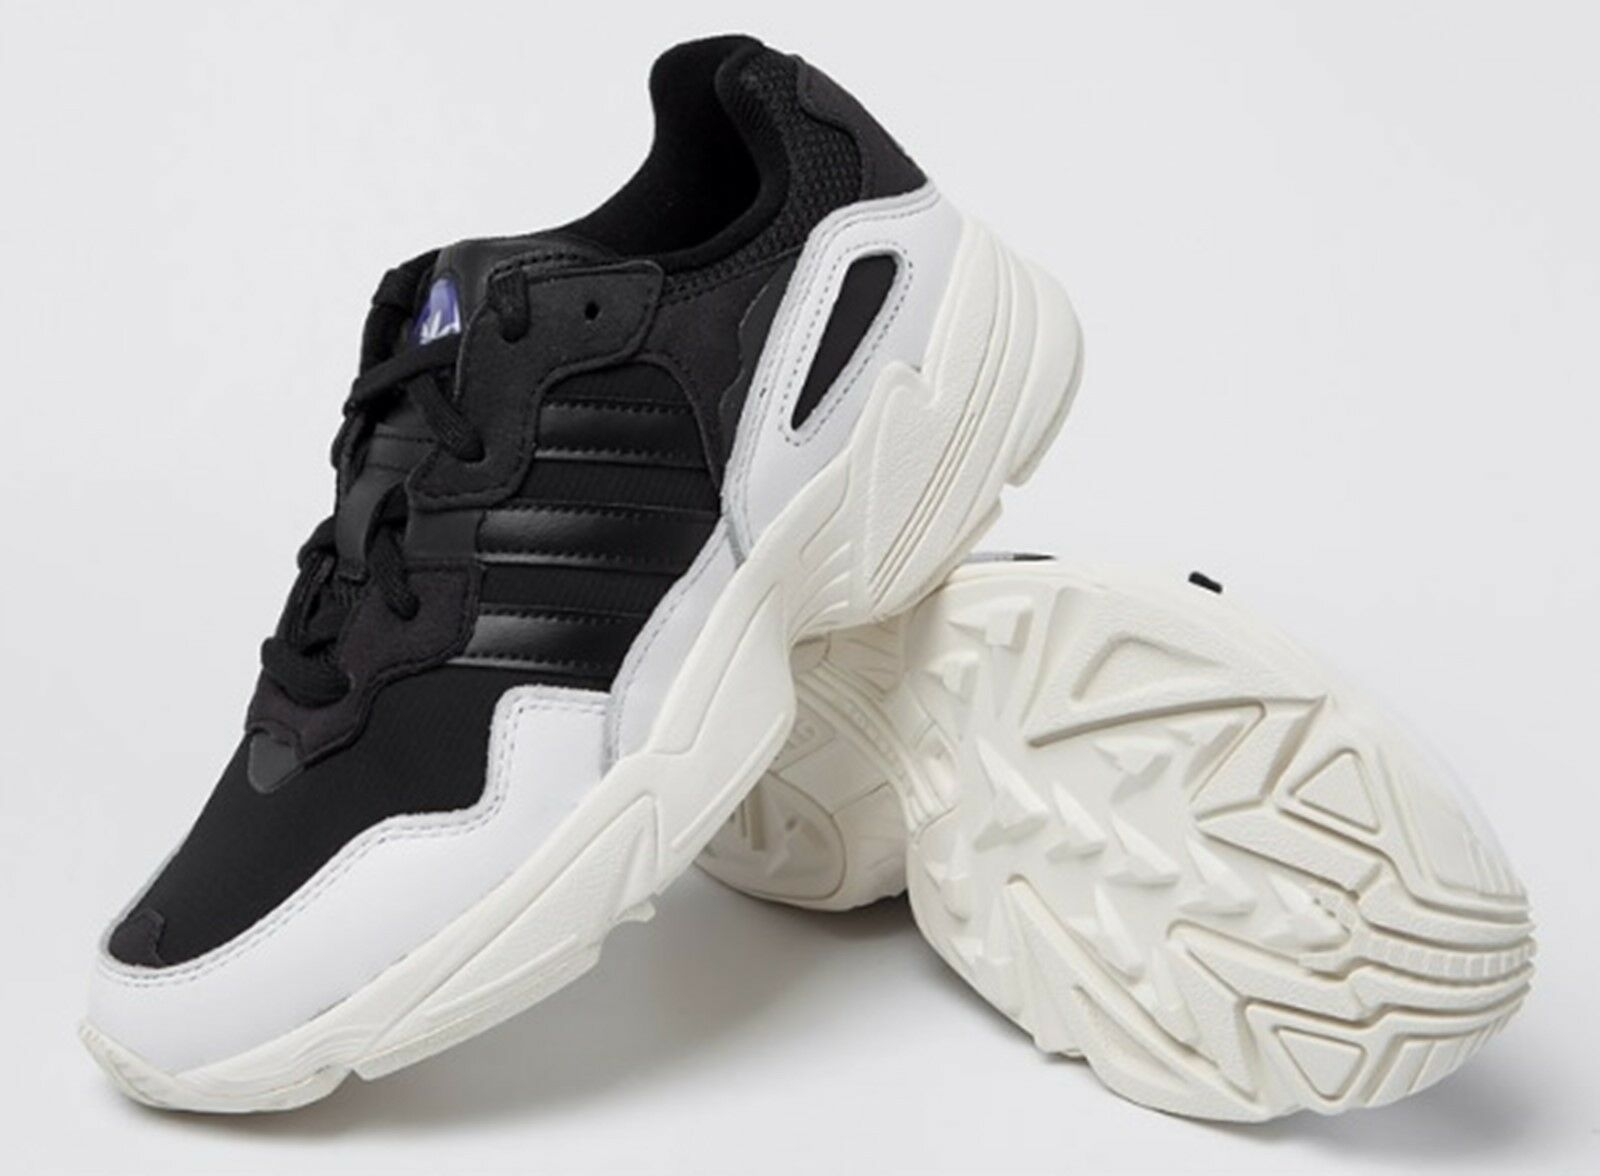 043d15cee Adidas Men Originals Yung-96 Off shoes Running White Casual Sneakers shoes  F97177